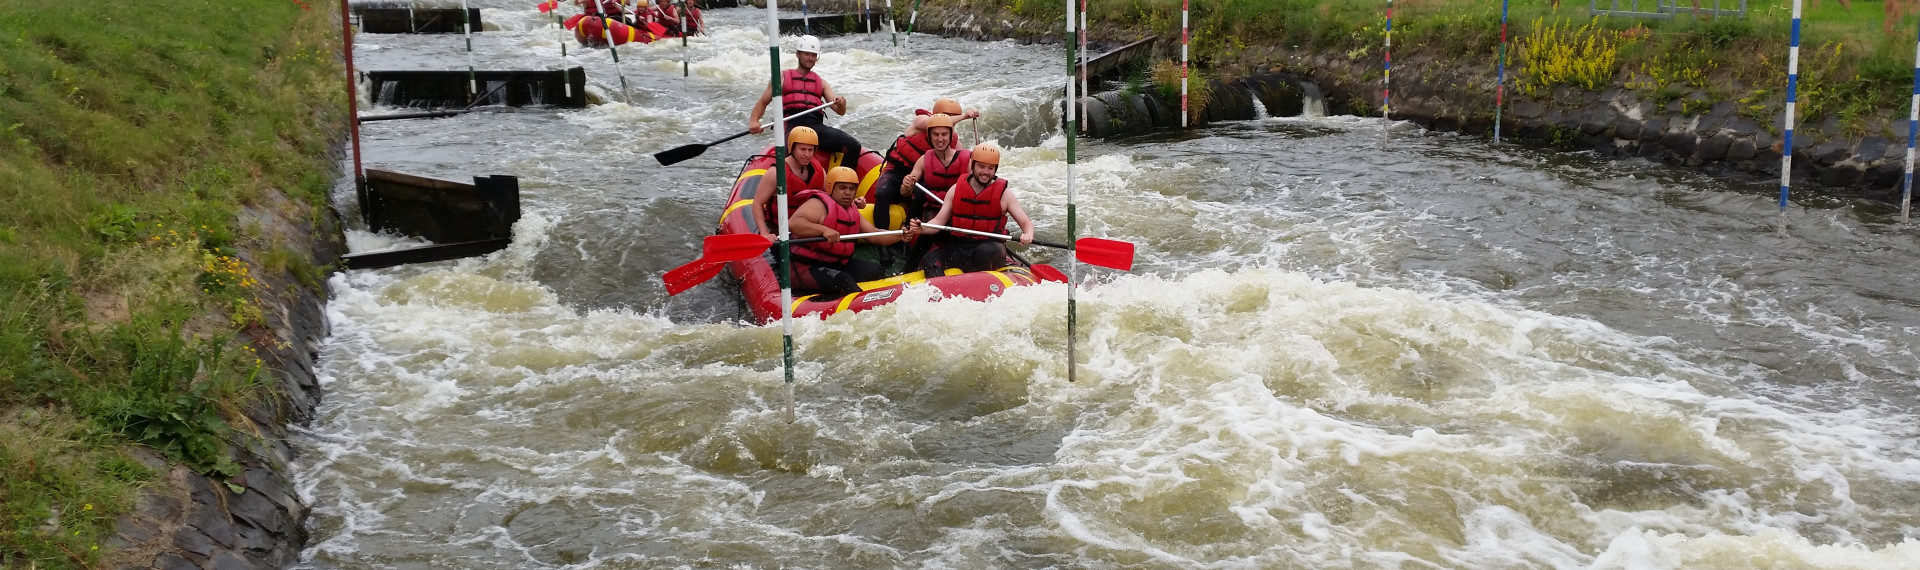 Rafting extrême à Prague | Descentes de dingue avec Pissup